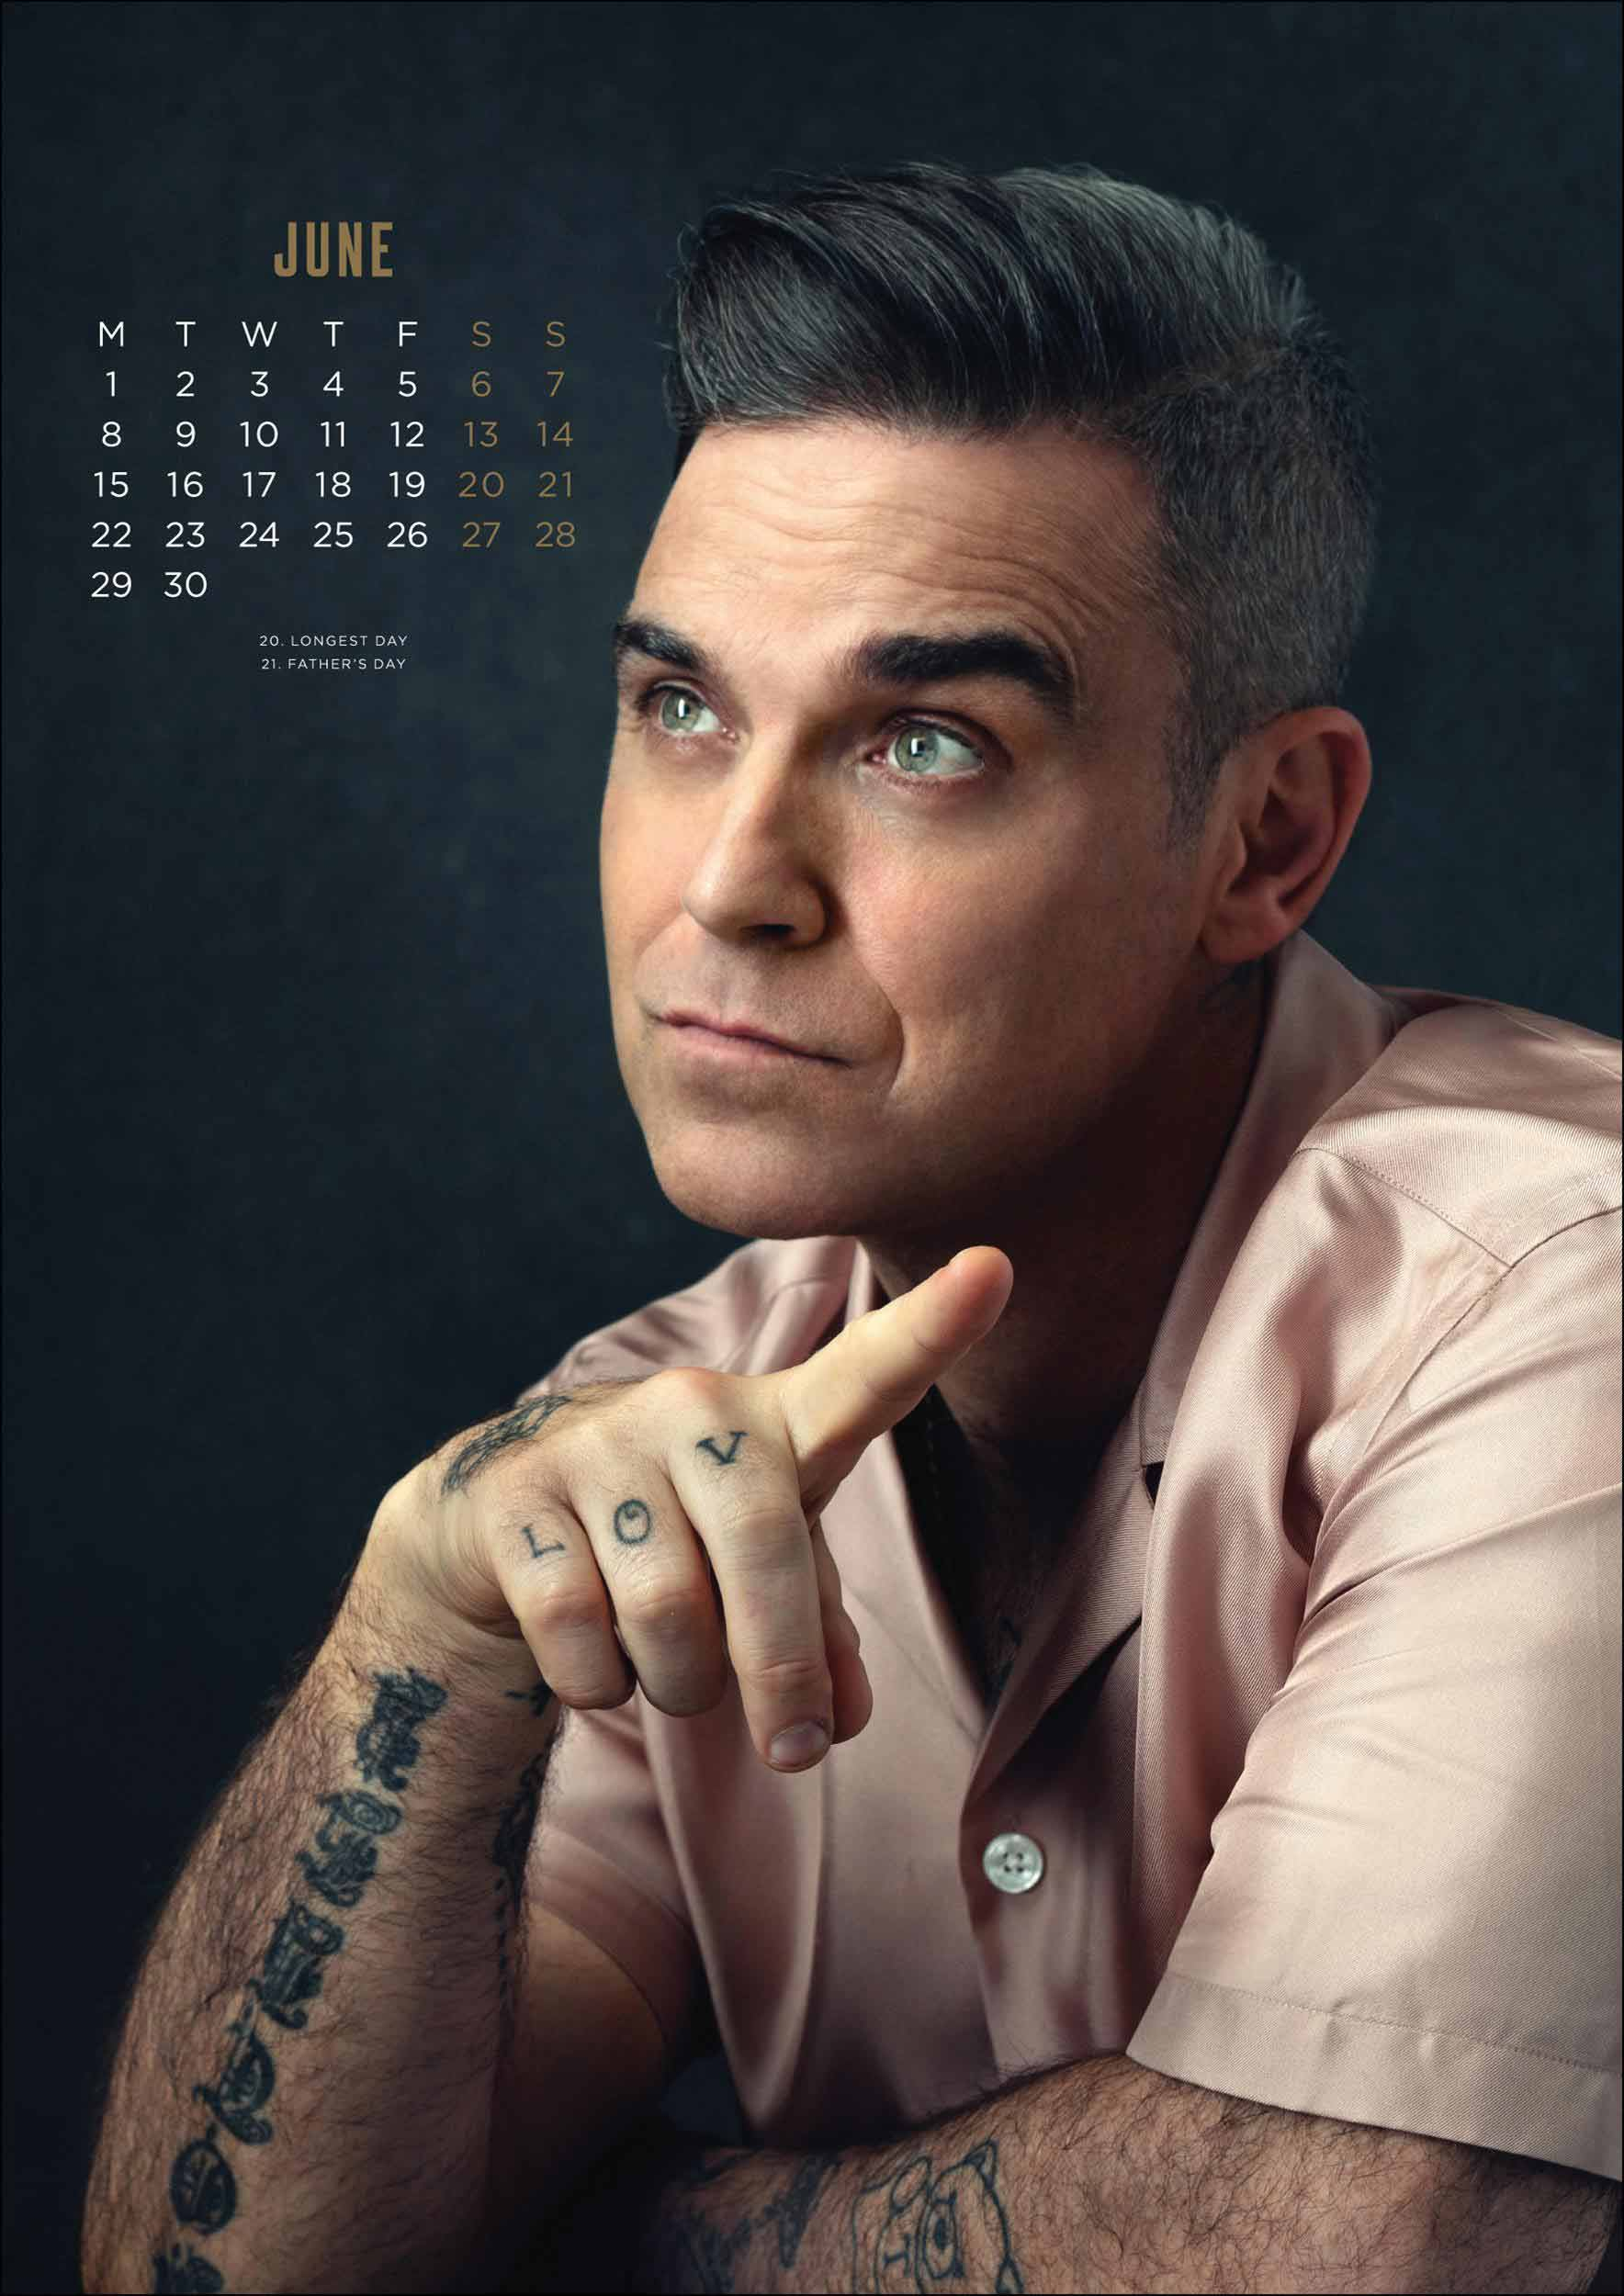 Robbie Williams Official A3 Calendar 2020 At Calendar Club